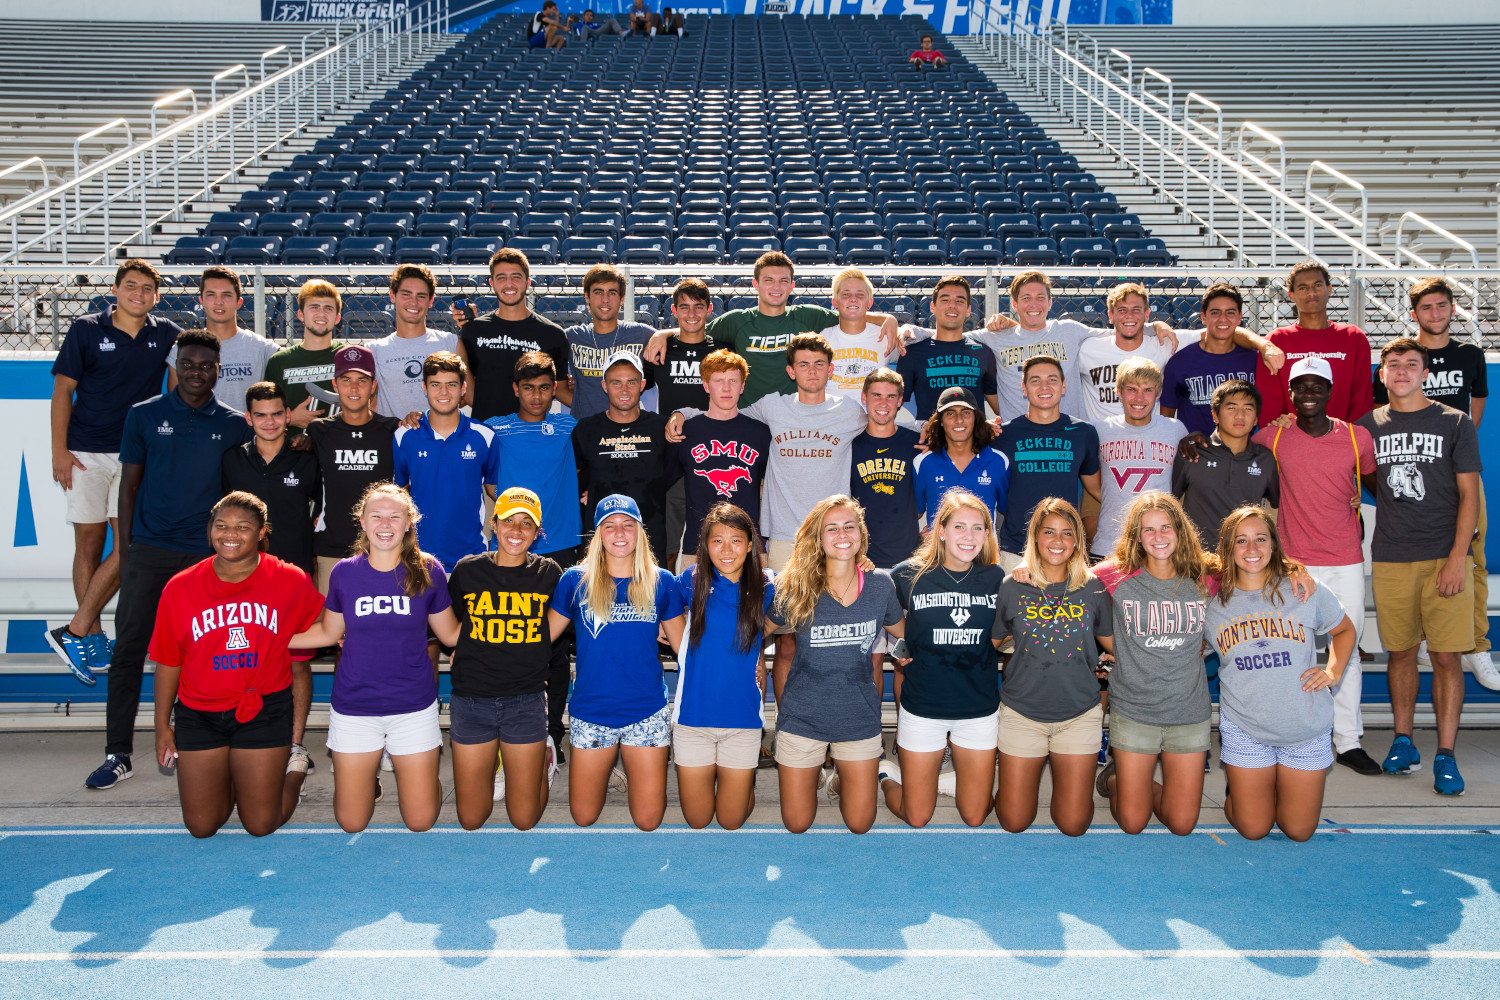 img academy student athletes pose wearing their college shirts at a spring commitment ceremony | IMGAcademy.com